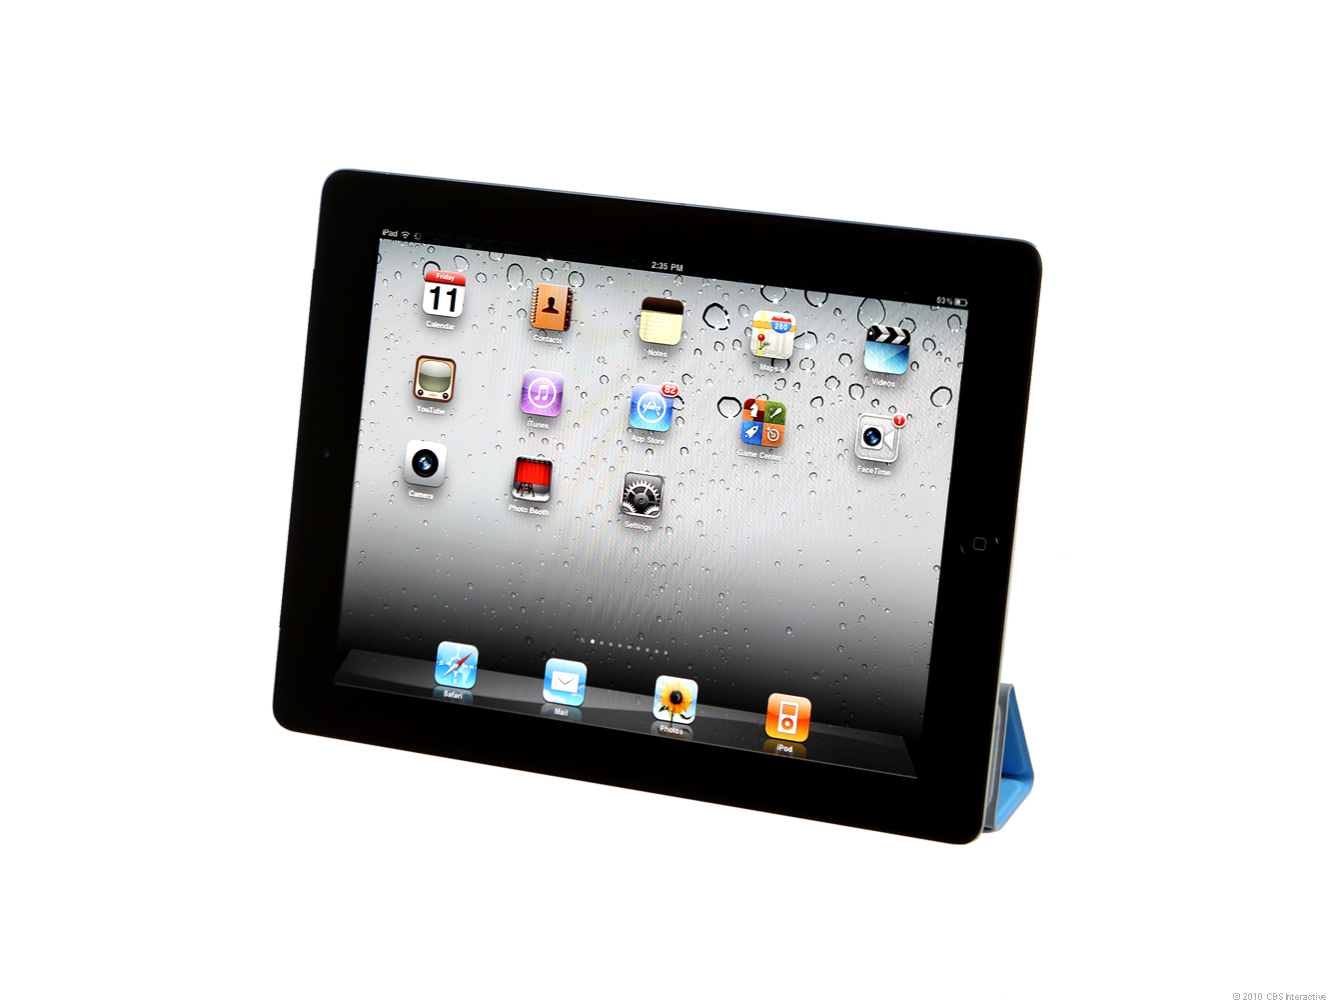 i think tech: Apple's upgraded tablet the iPad 2